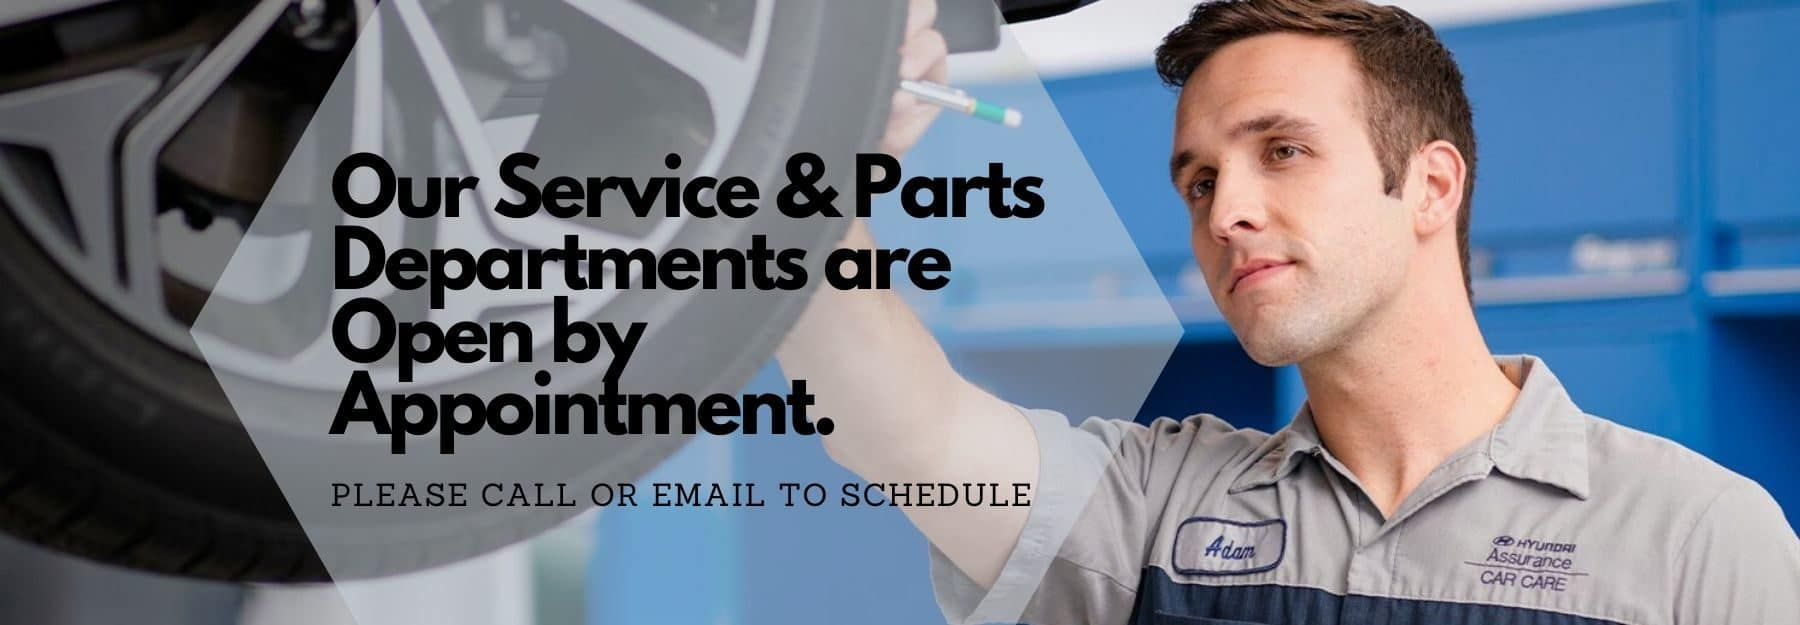 service and parts departments are open by appointment.